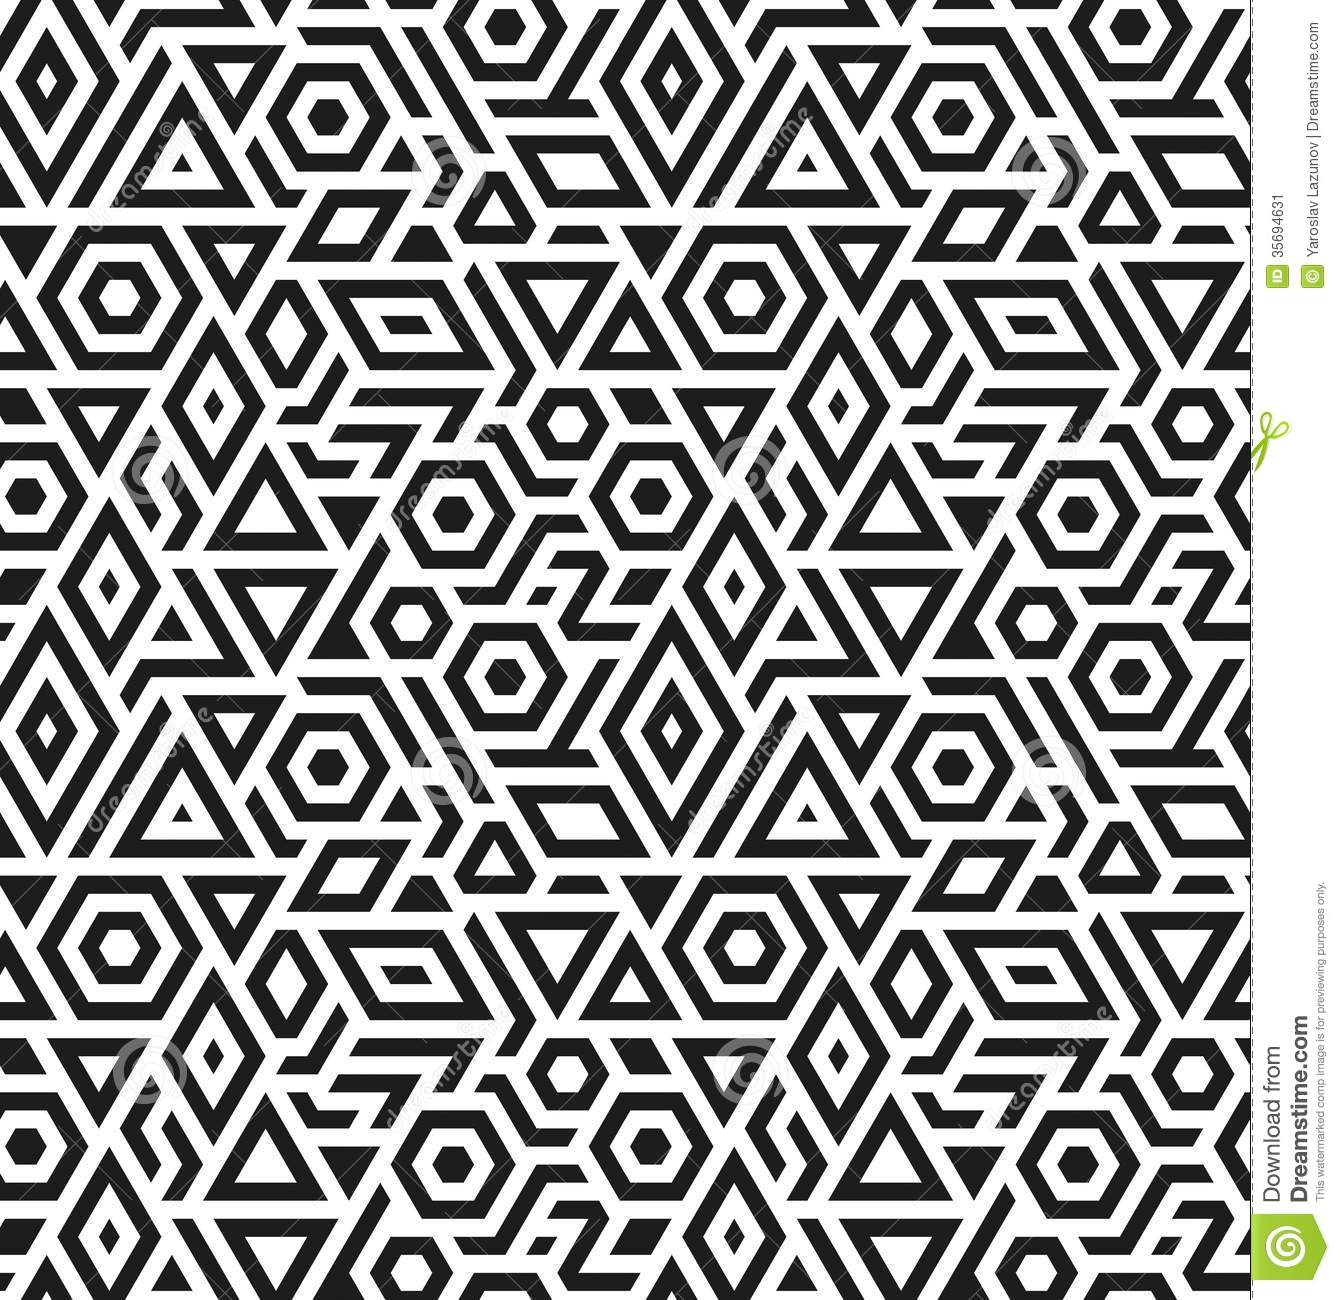 12 Free Vector Geometric Seamless Pattern Images